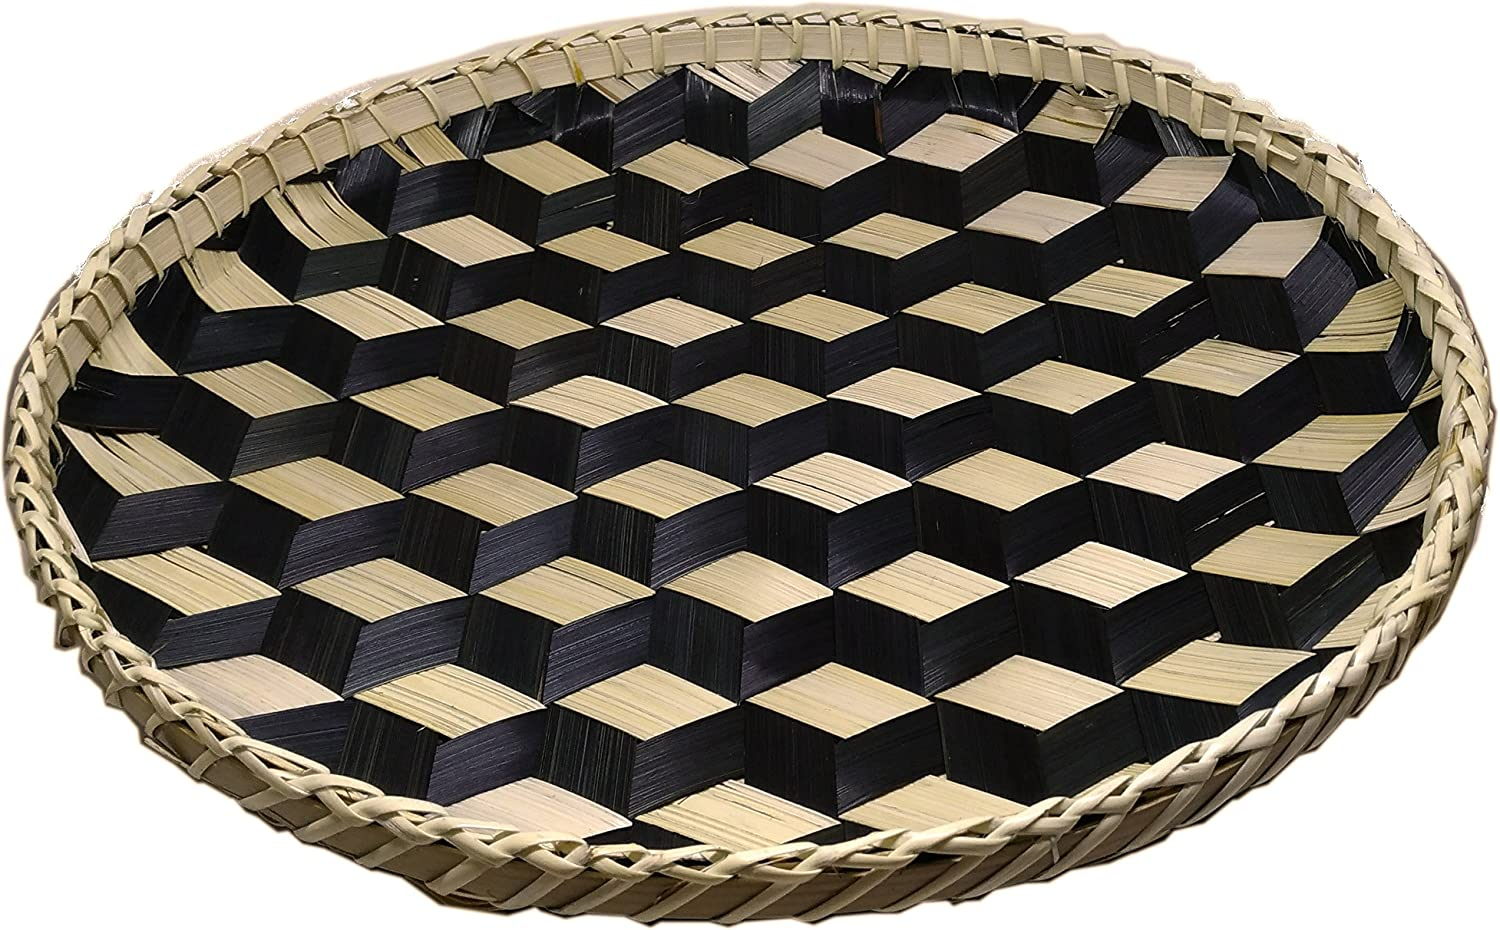 Ann Lee Design Handmade Round Basket Tray Extra Large - 14.02 x 14.02 x 0.98 inches (Black)